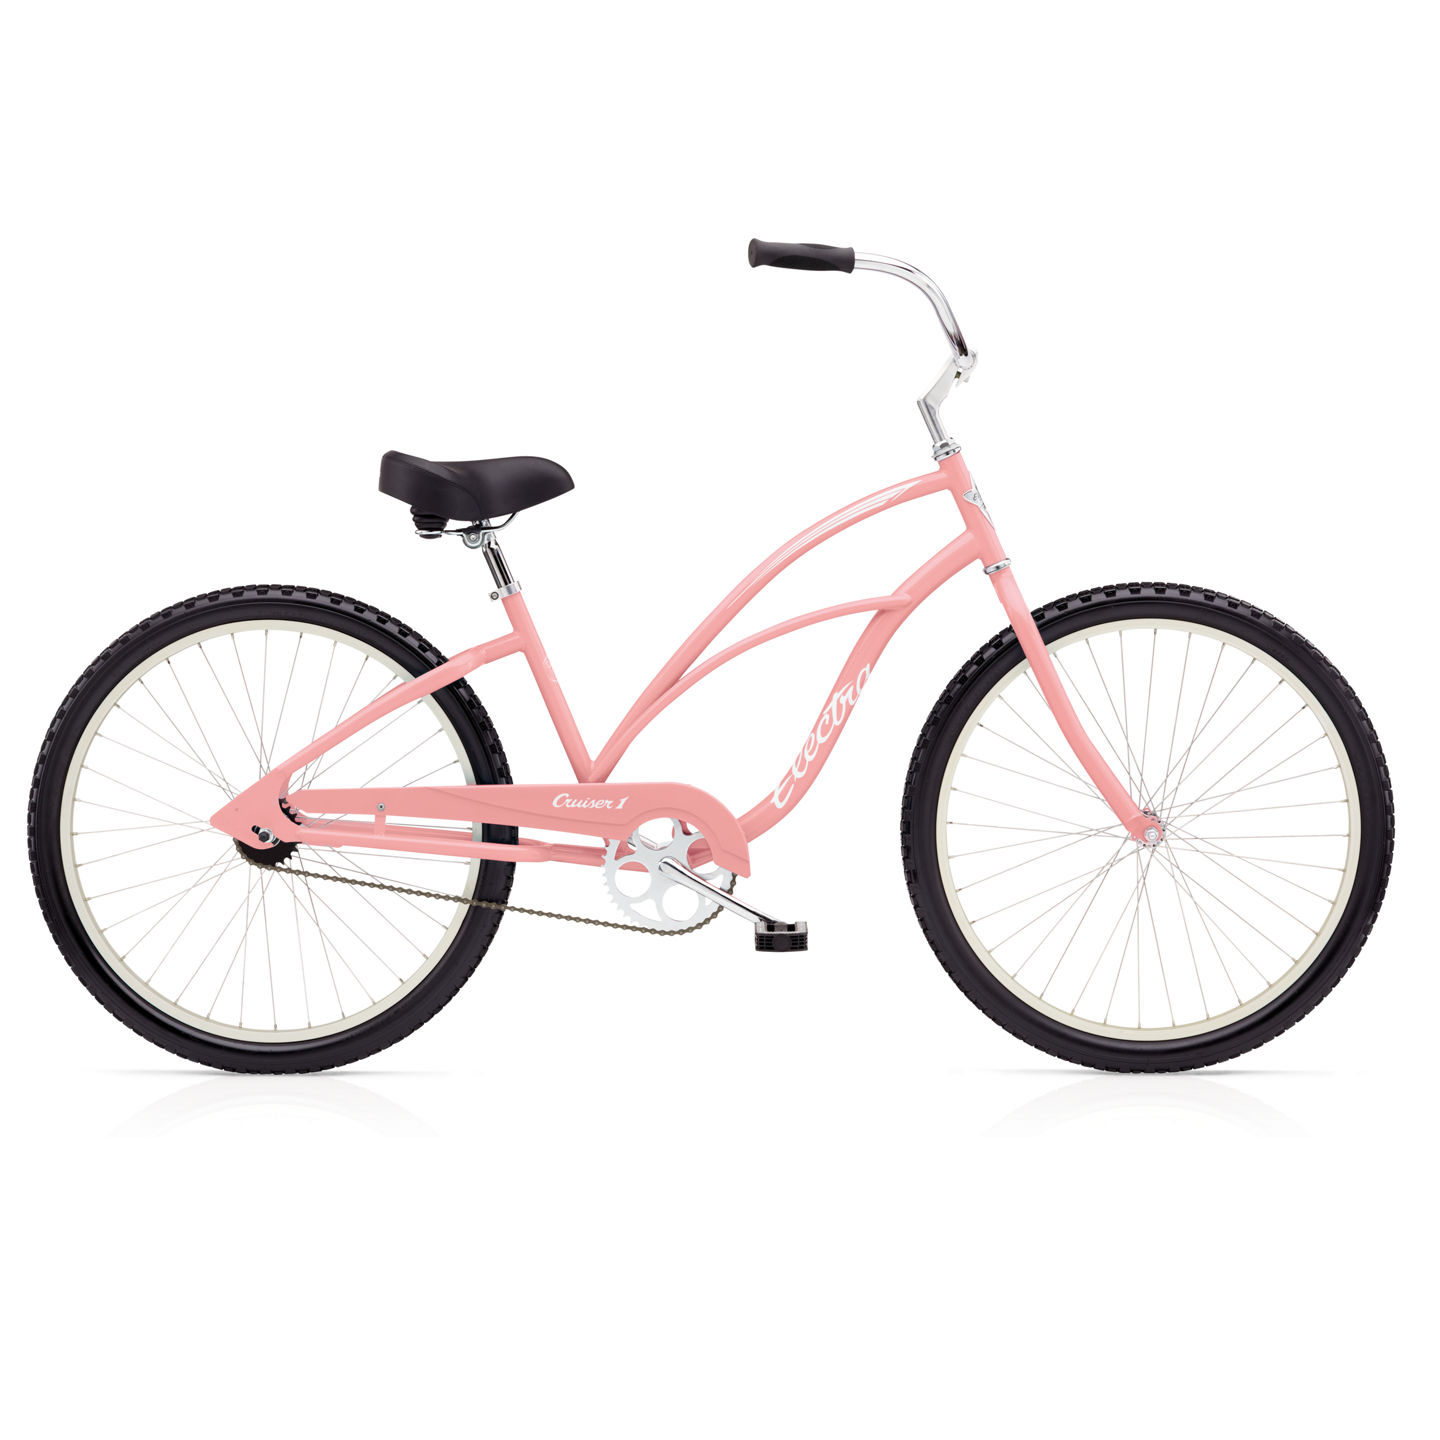 "Bicykel ELECTRA Cruiser 1 Ladies' Pink 24"" 2017"